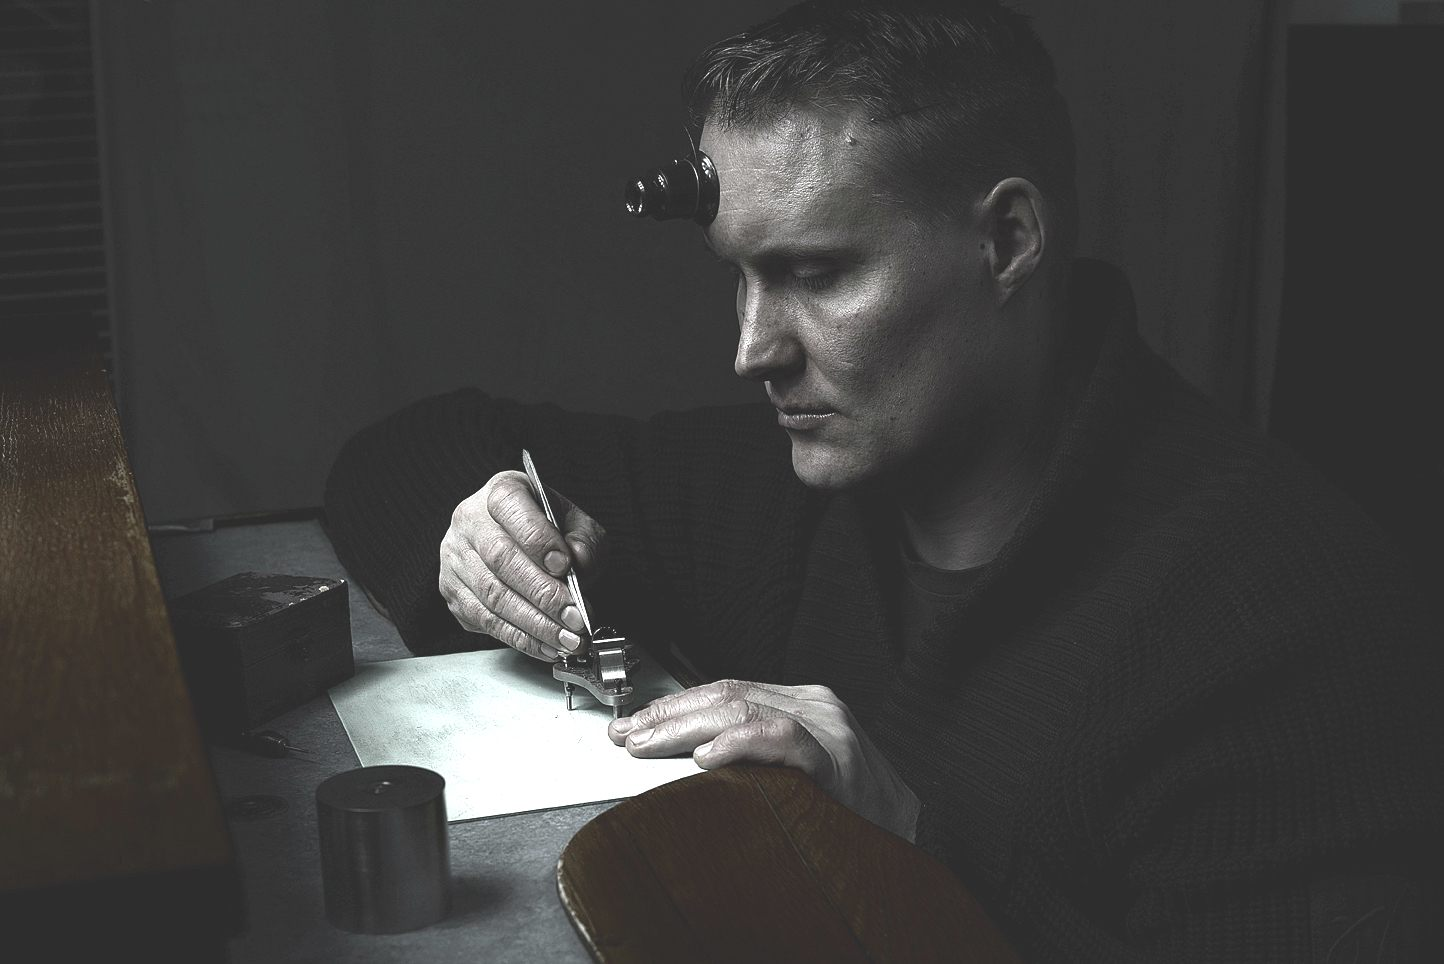 Independent watchmaker Antti Rönkkö makes ultra-limited-edition wristwatches by hand in his workshop in Espoo, Finland.